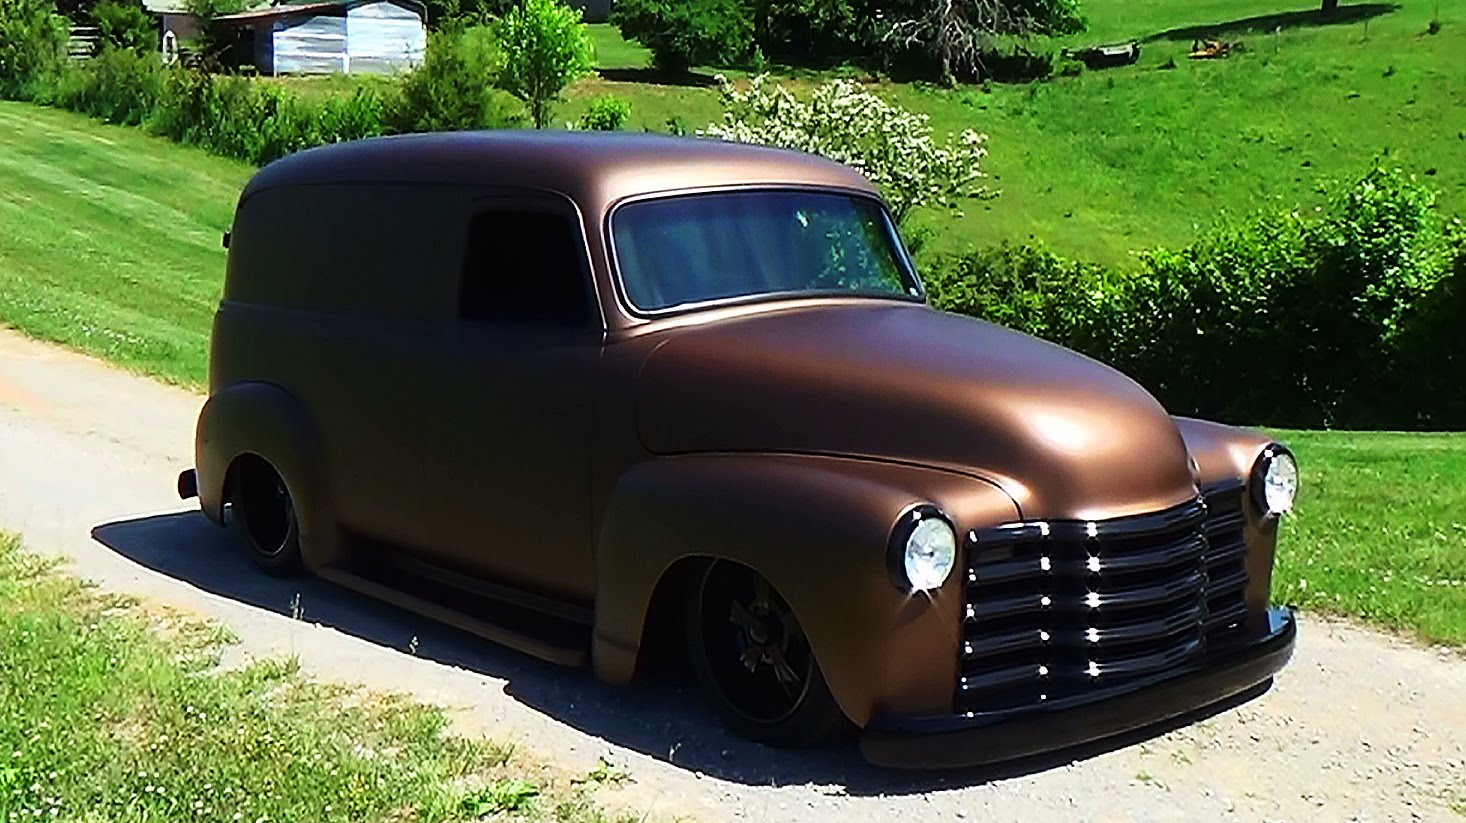 47 Chevrolet Panel Truck Street Rod Hudson And Custom 1949 Chevy Rat Scottiedtv Coolest Cars On The Web